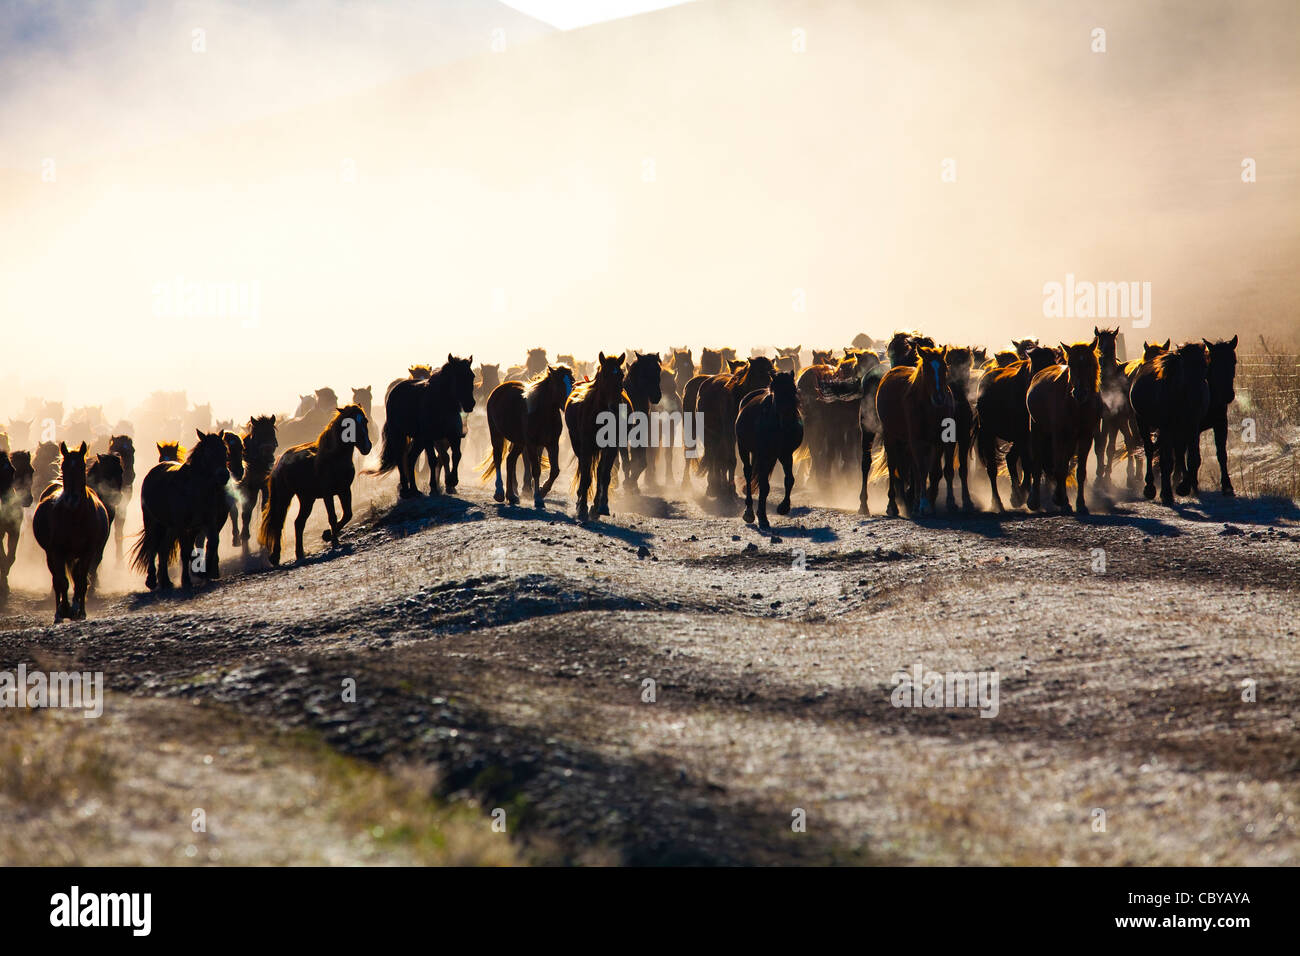 Horses being herded in Inner Mongolia - Stock Image